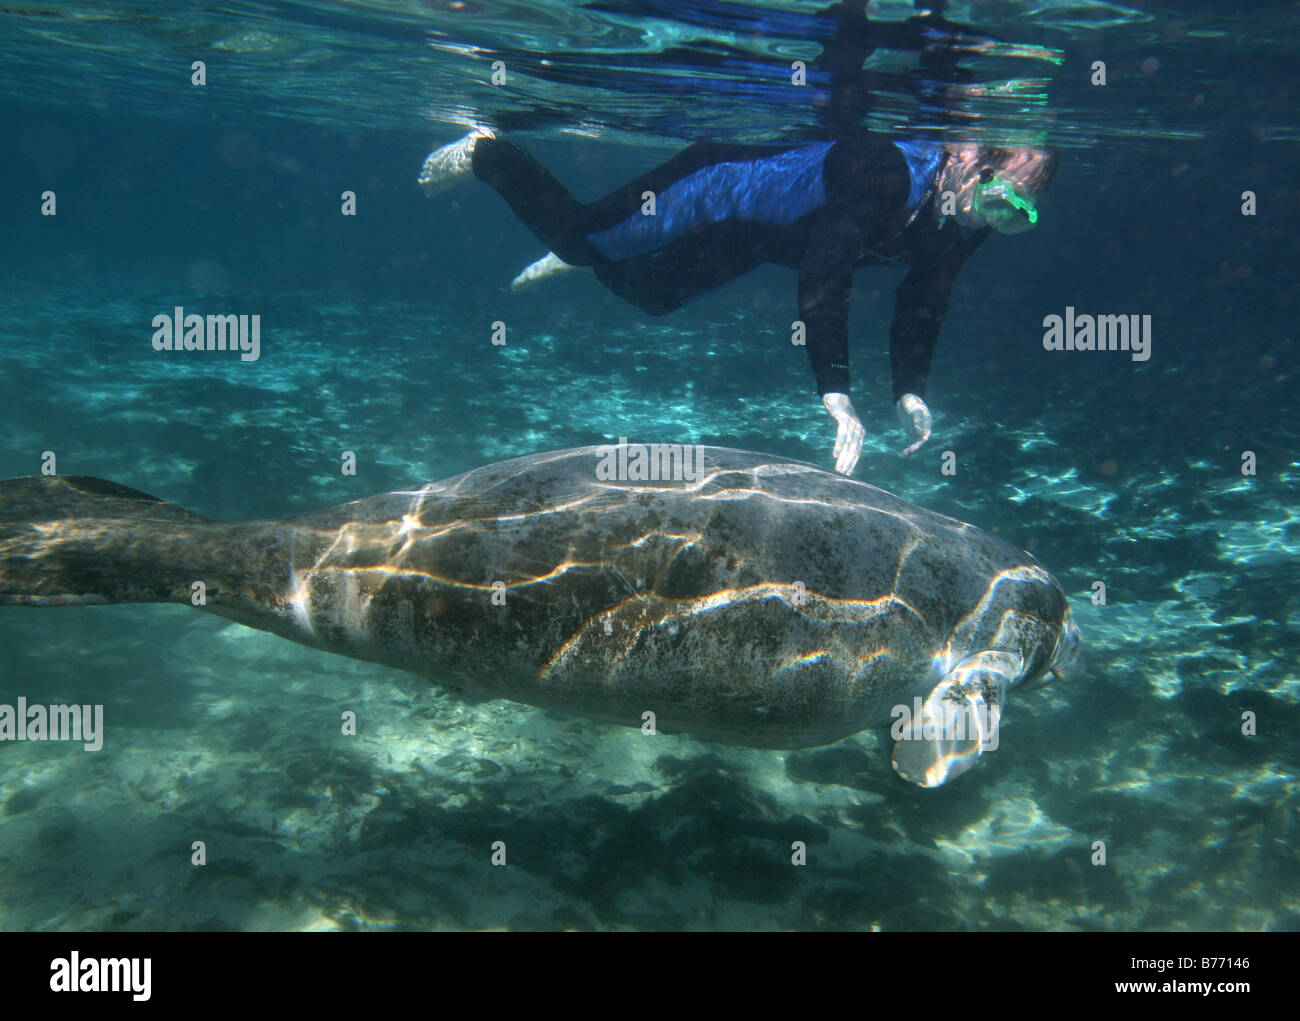 West Indian Manatee snorkel diver Crystal river florida - Stock Image